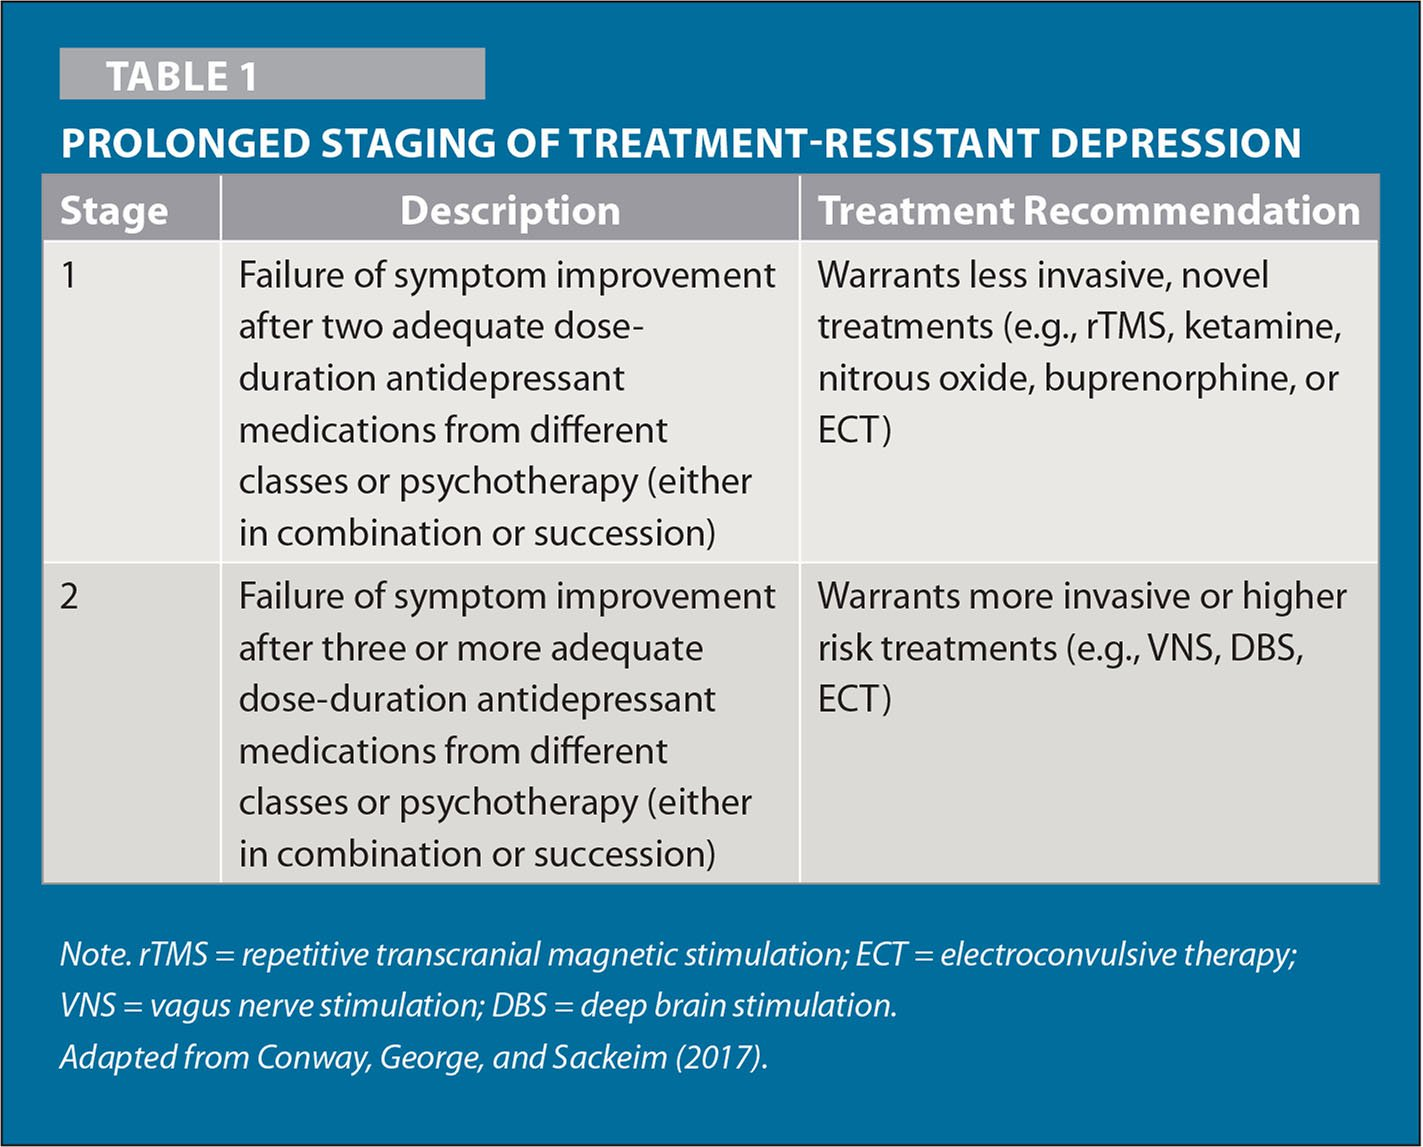 Prolonged Staging of Treatment-Resistant Depression